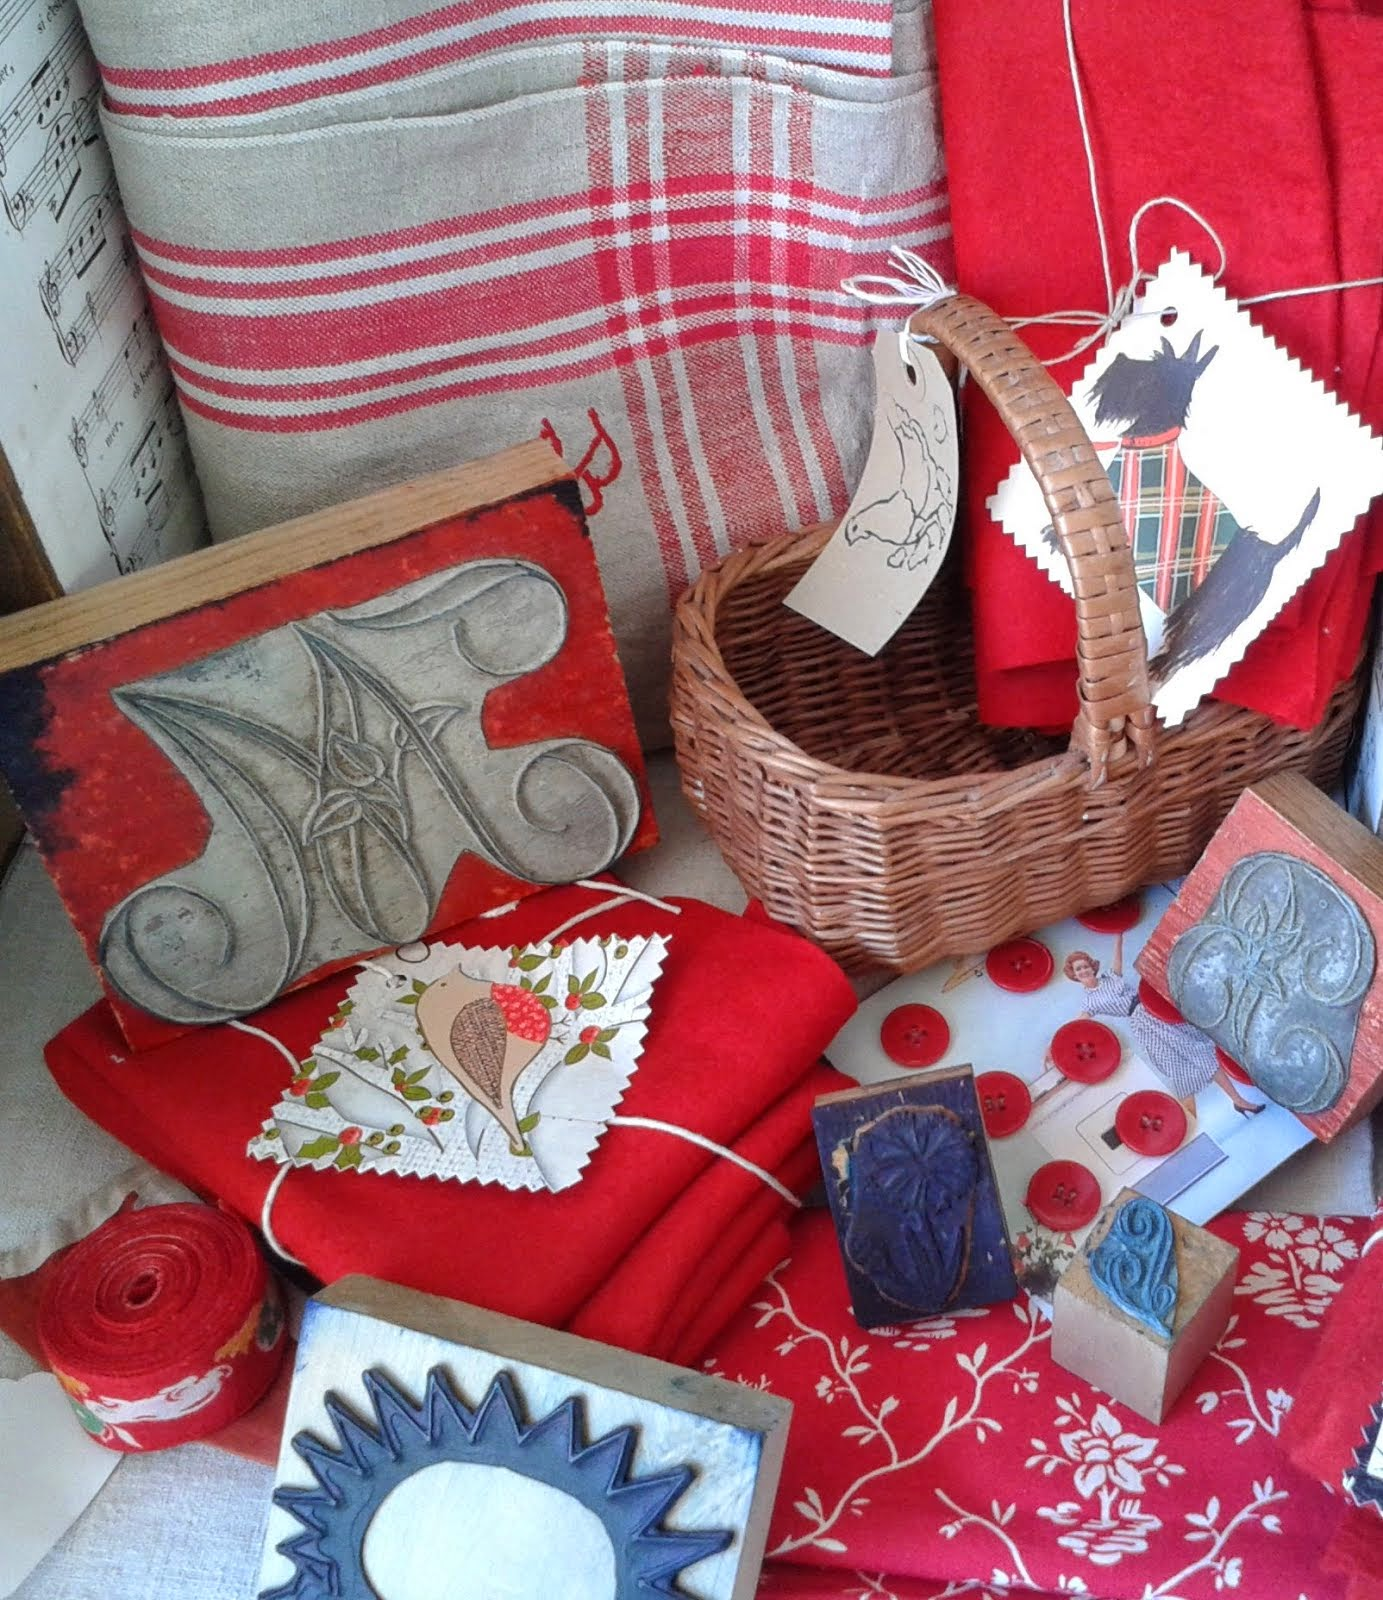 The Roxy Vintage Fair in Cheddar, Somerset